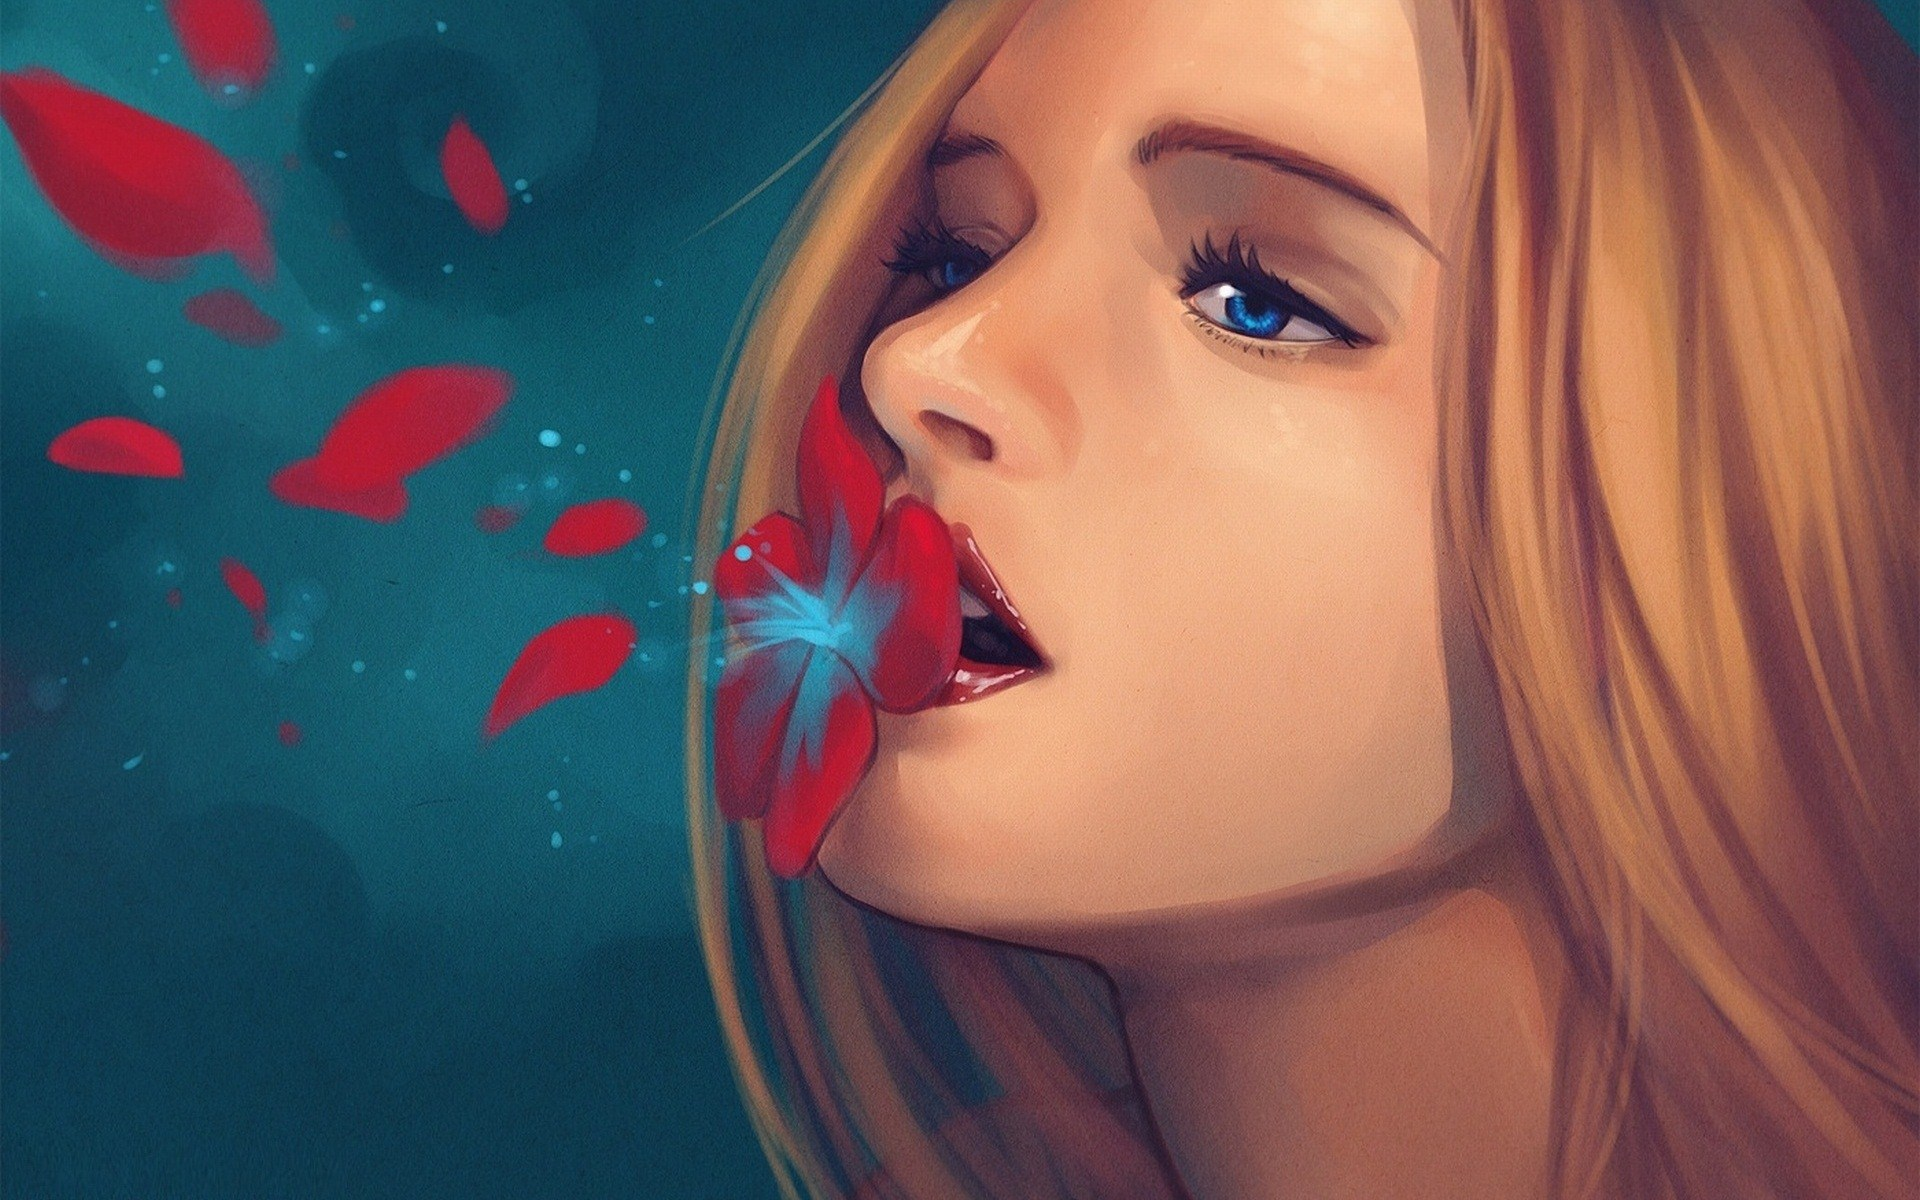 Portrait Blonde Girl Red Flower Petals Drawing Painting Art HD Wallpaper